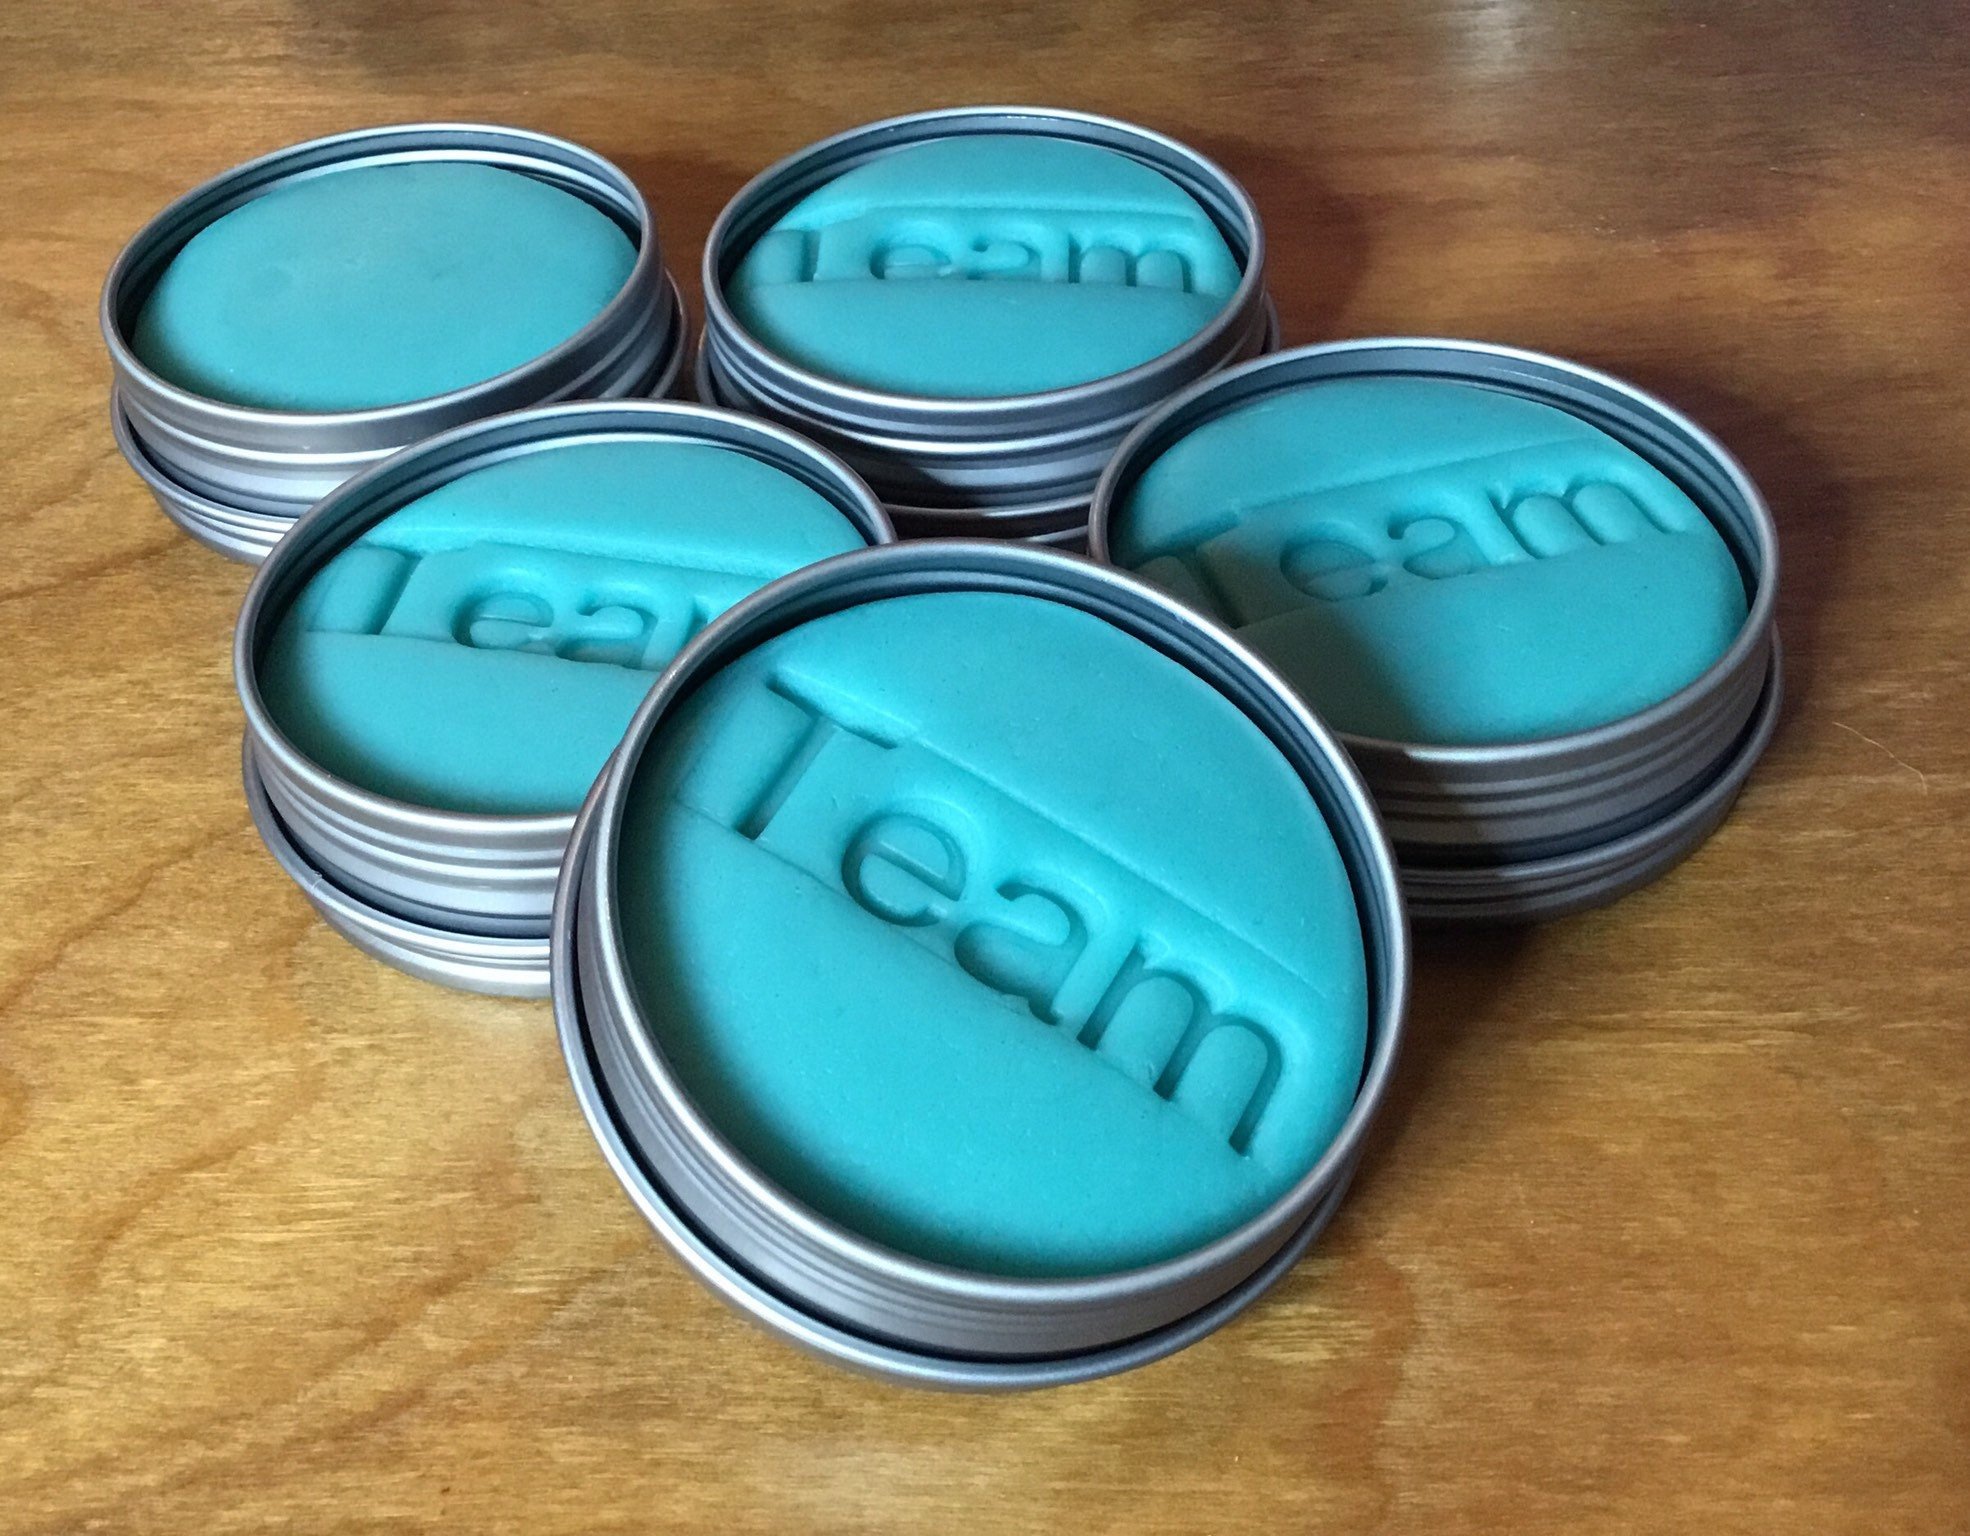 5 Personalized Bulk Gifts: Employee Client Friend Co